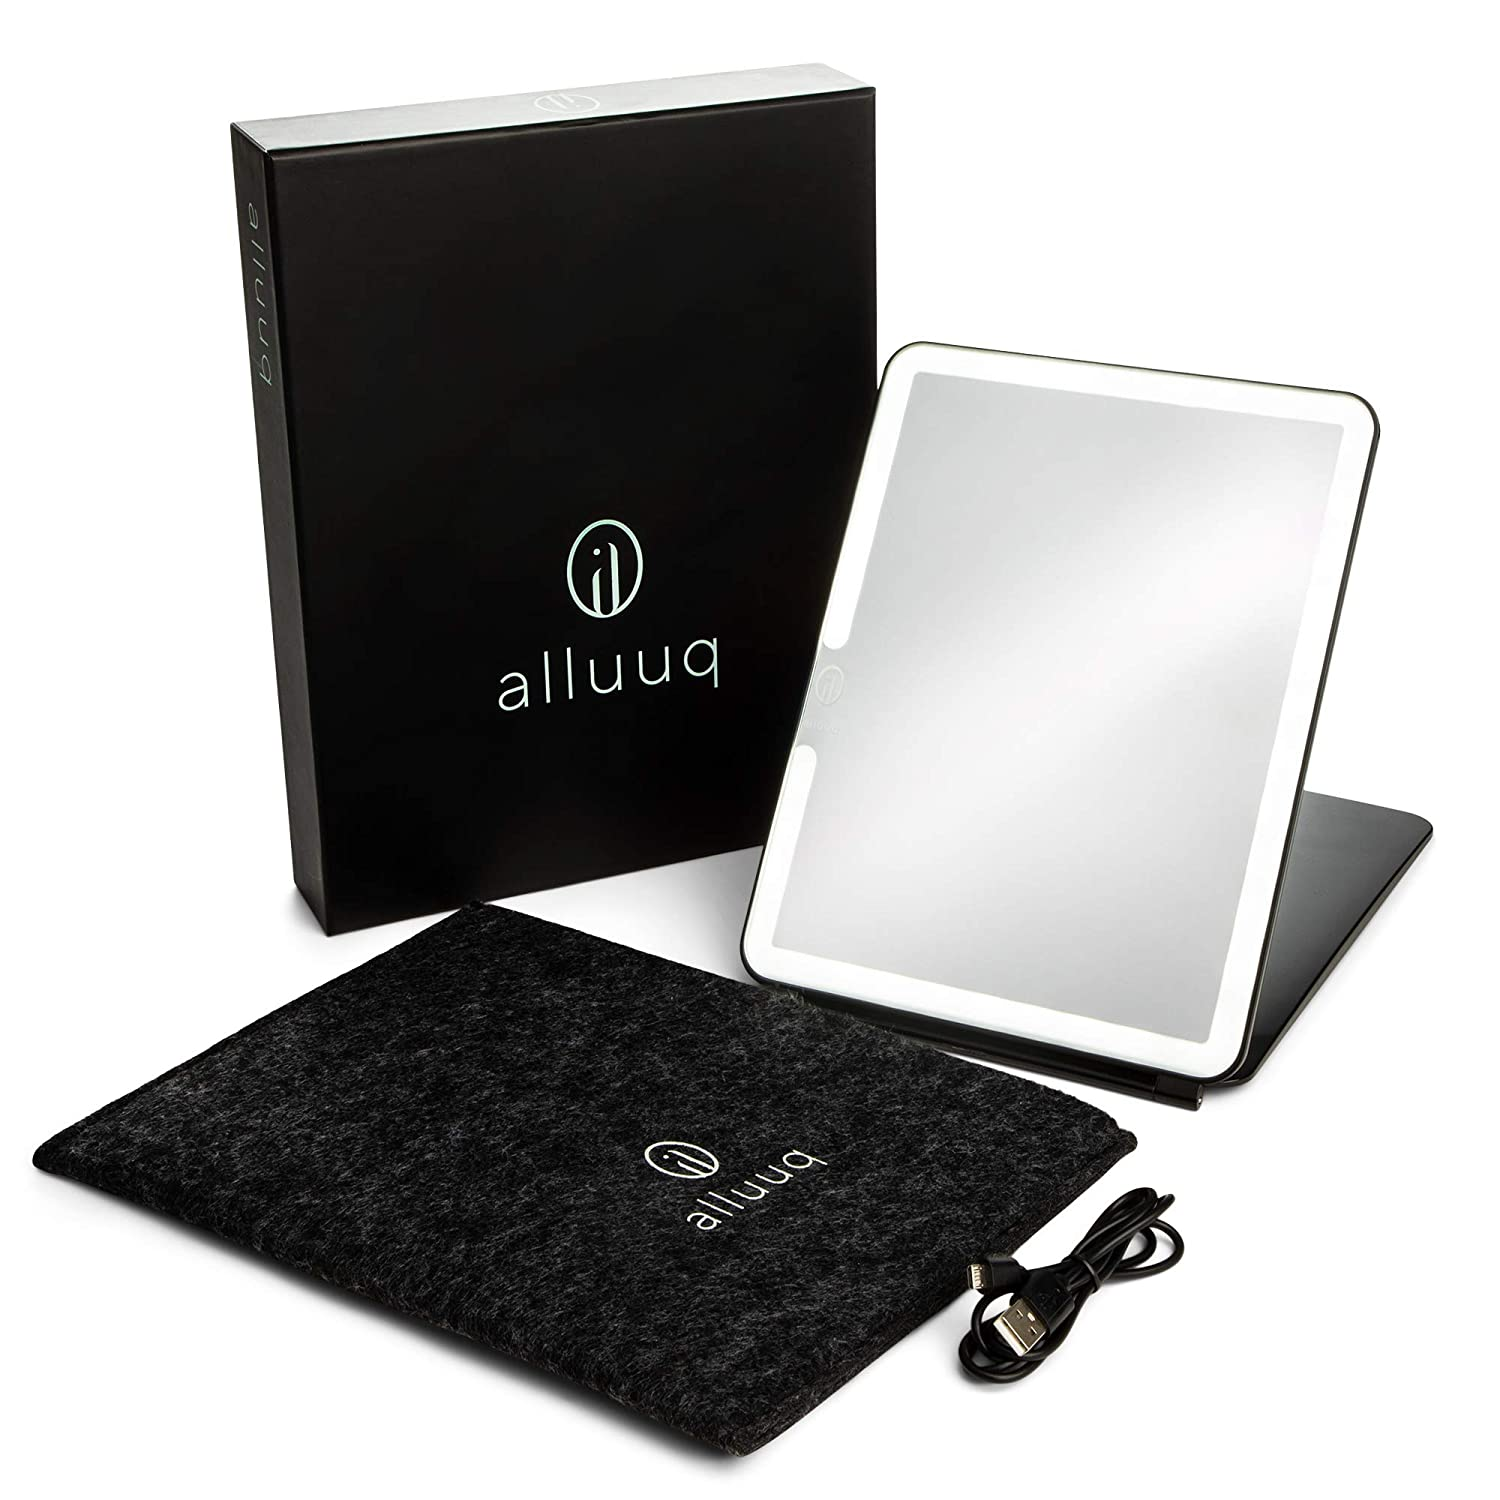 Alluuq, Lighted Travel Makeup Mirror, FELT CARRY BAG, Black, LED Makeup Mirror, Travel Vanity Mirror with Lights, Long Lasting USB Rechargeable Battery, Portable, Stylish, Pose LED Travel Mirror